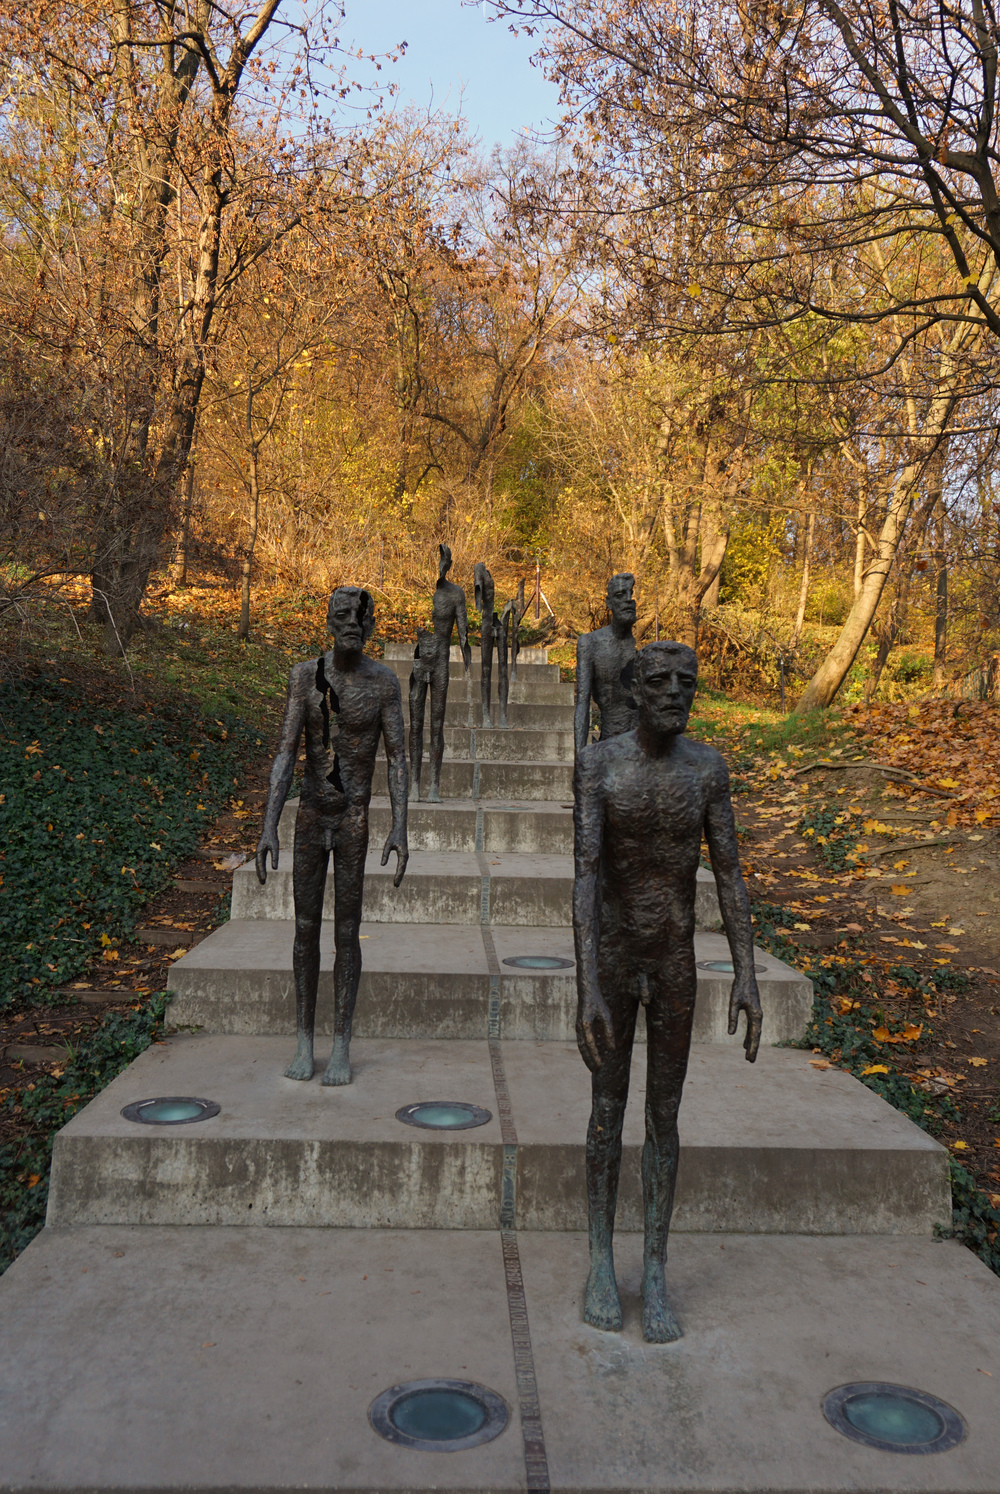 The Prague Memorial to the Victims of Communism